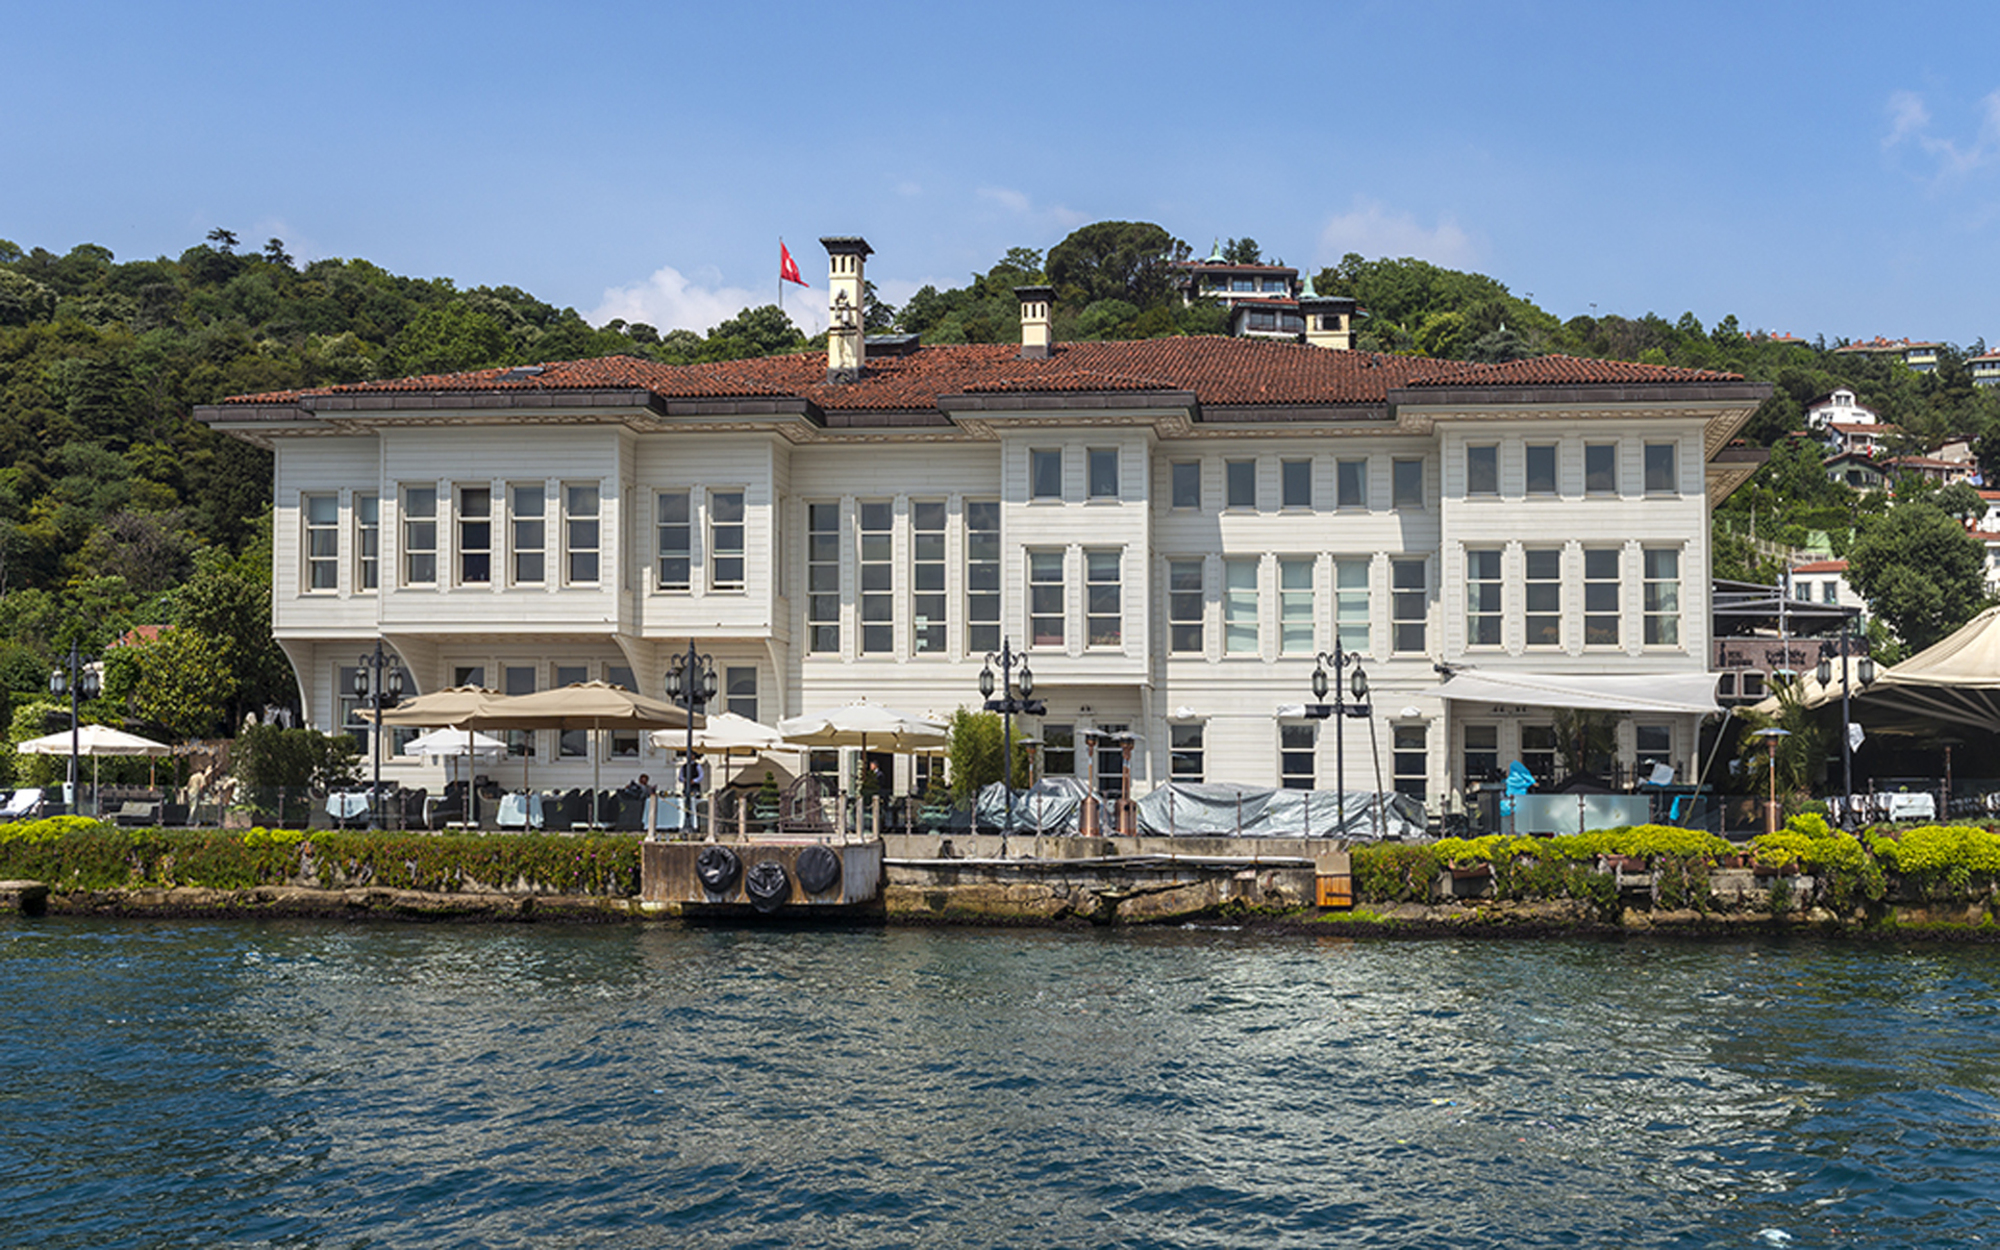 Hotel les ottomans best luxury hotels in istanbul top 10 source